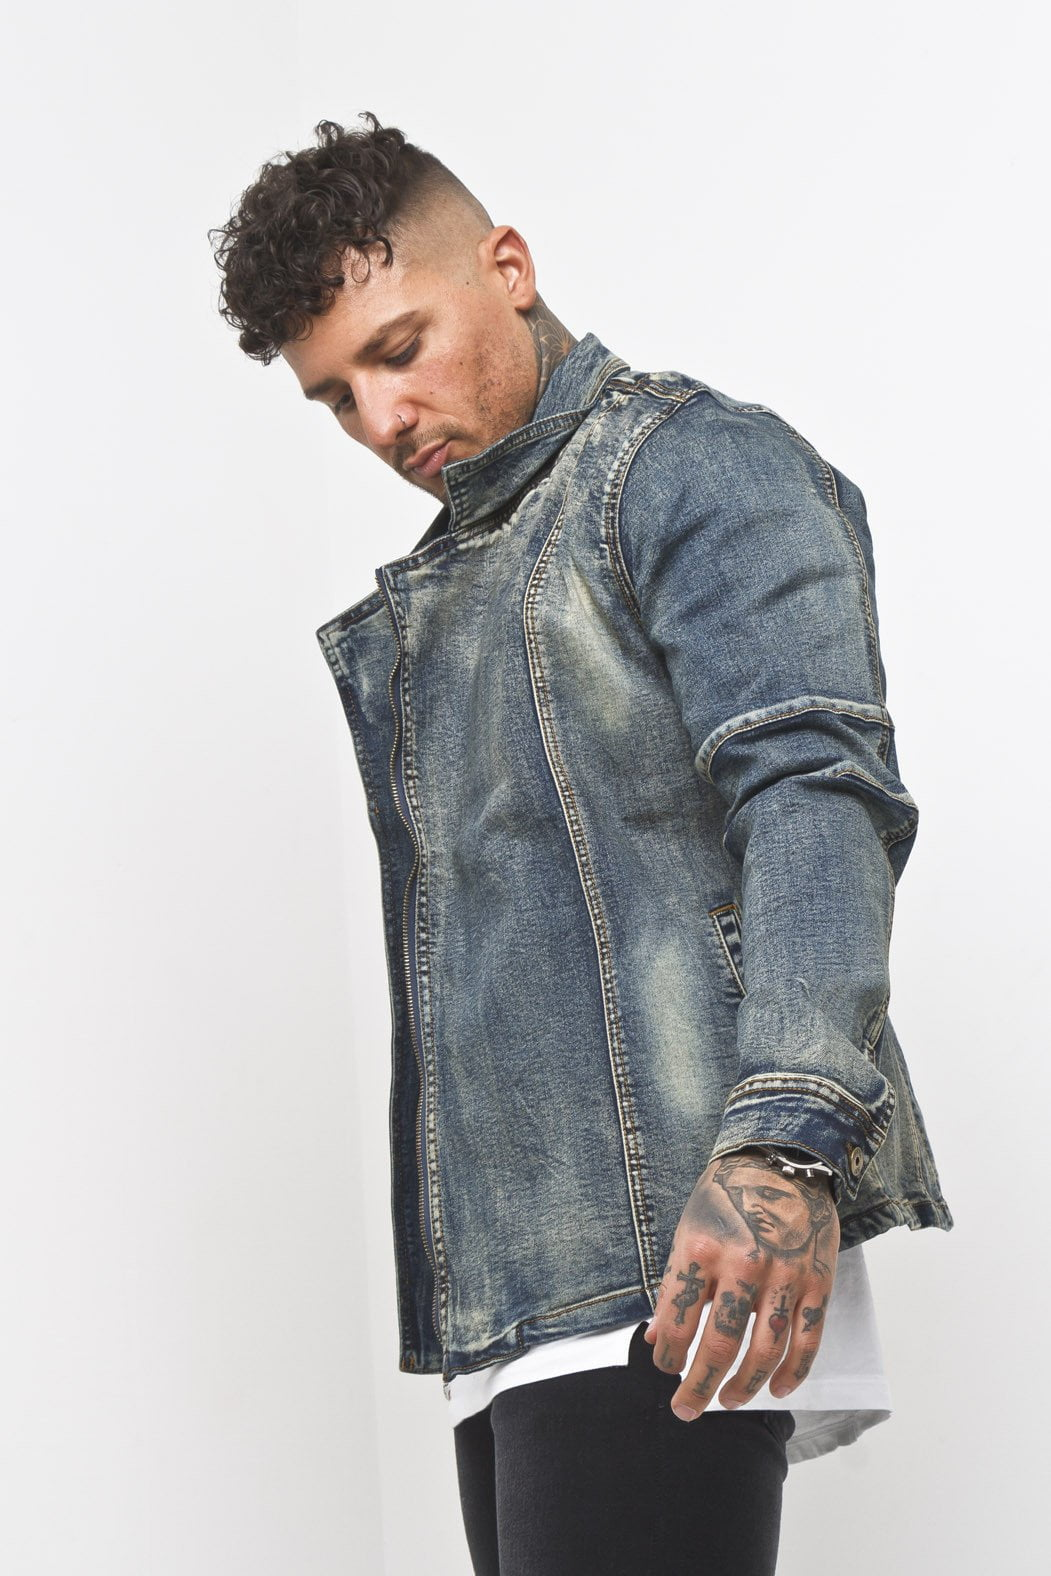 Denim Biker Jacket in Dirty Indigo - Liquor N Poker  Liquor N Poker